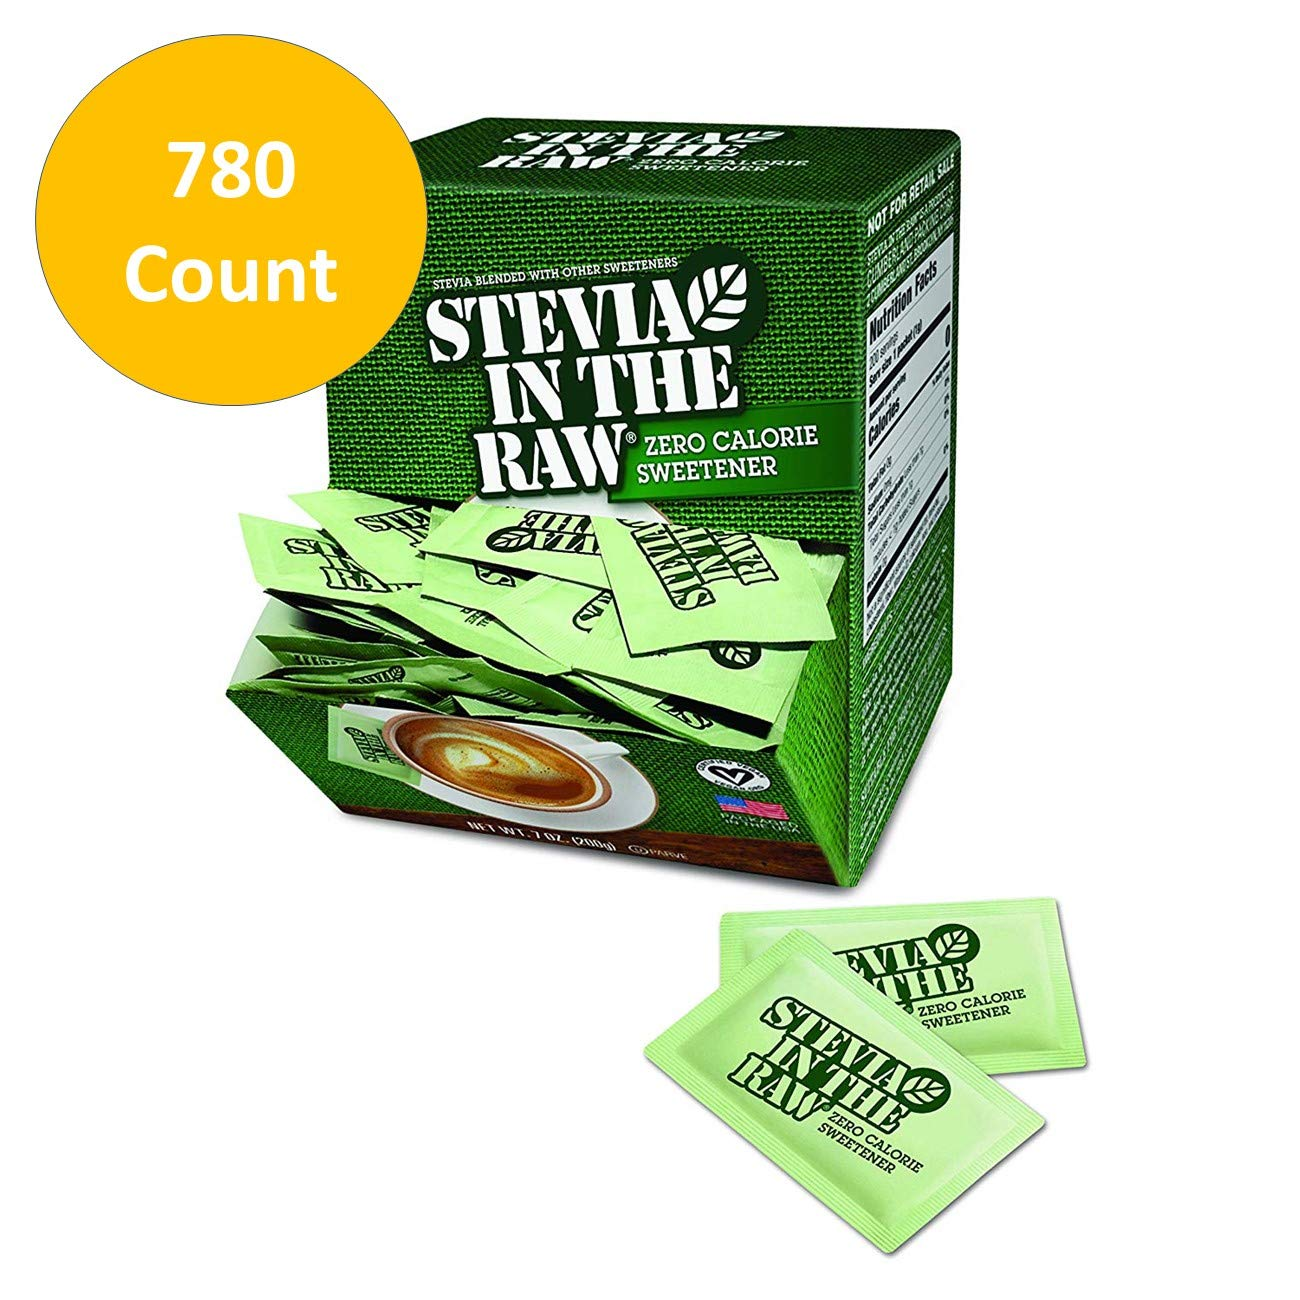 Stevia In The Raw, 780 Count (780 Count total) by In The Raw